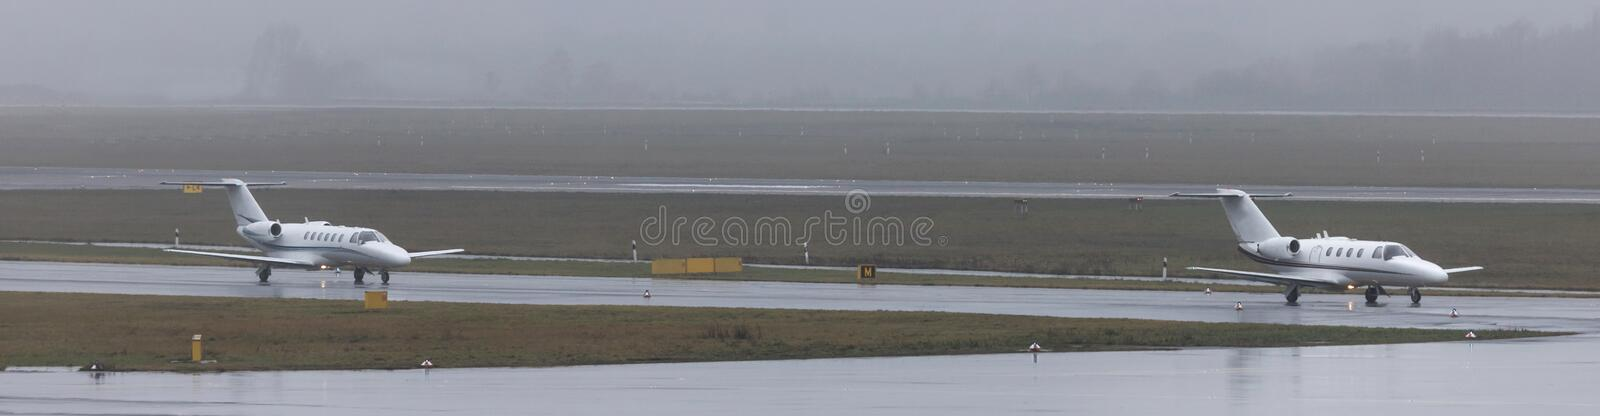 Private jets on an rainy airport panorama royalty free stock images